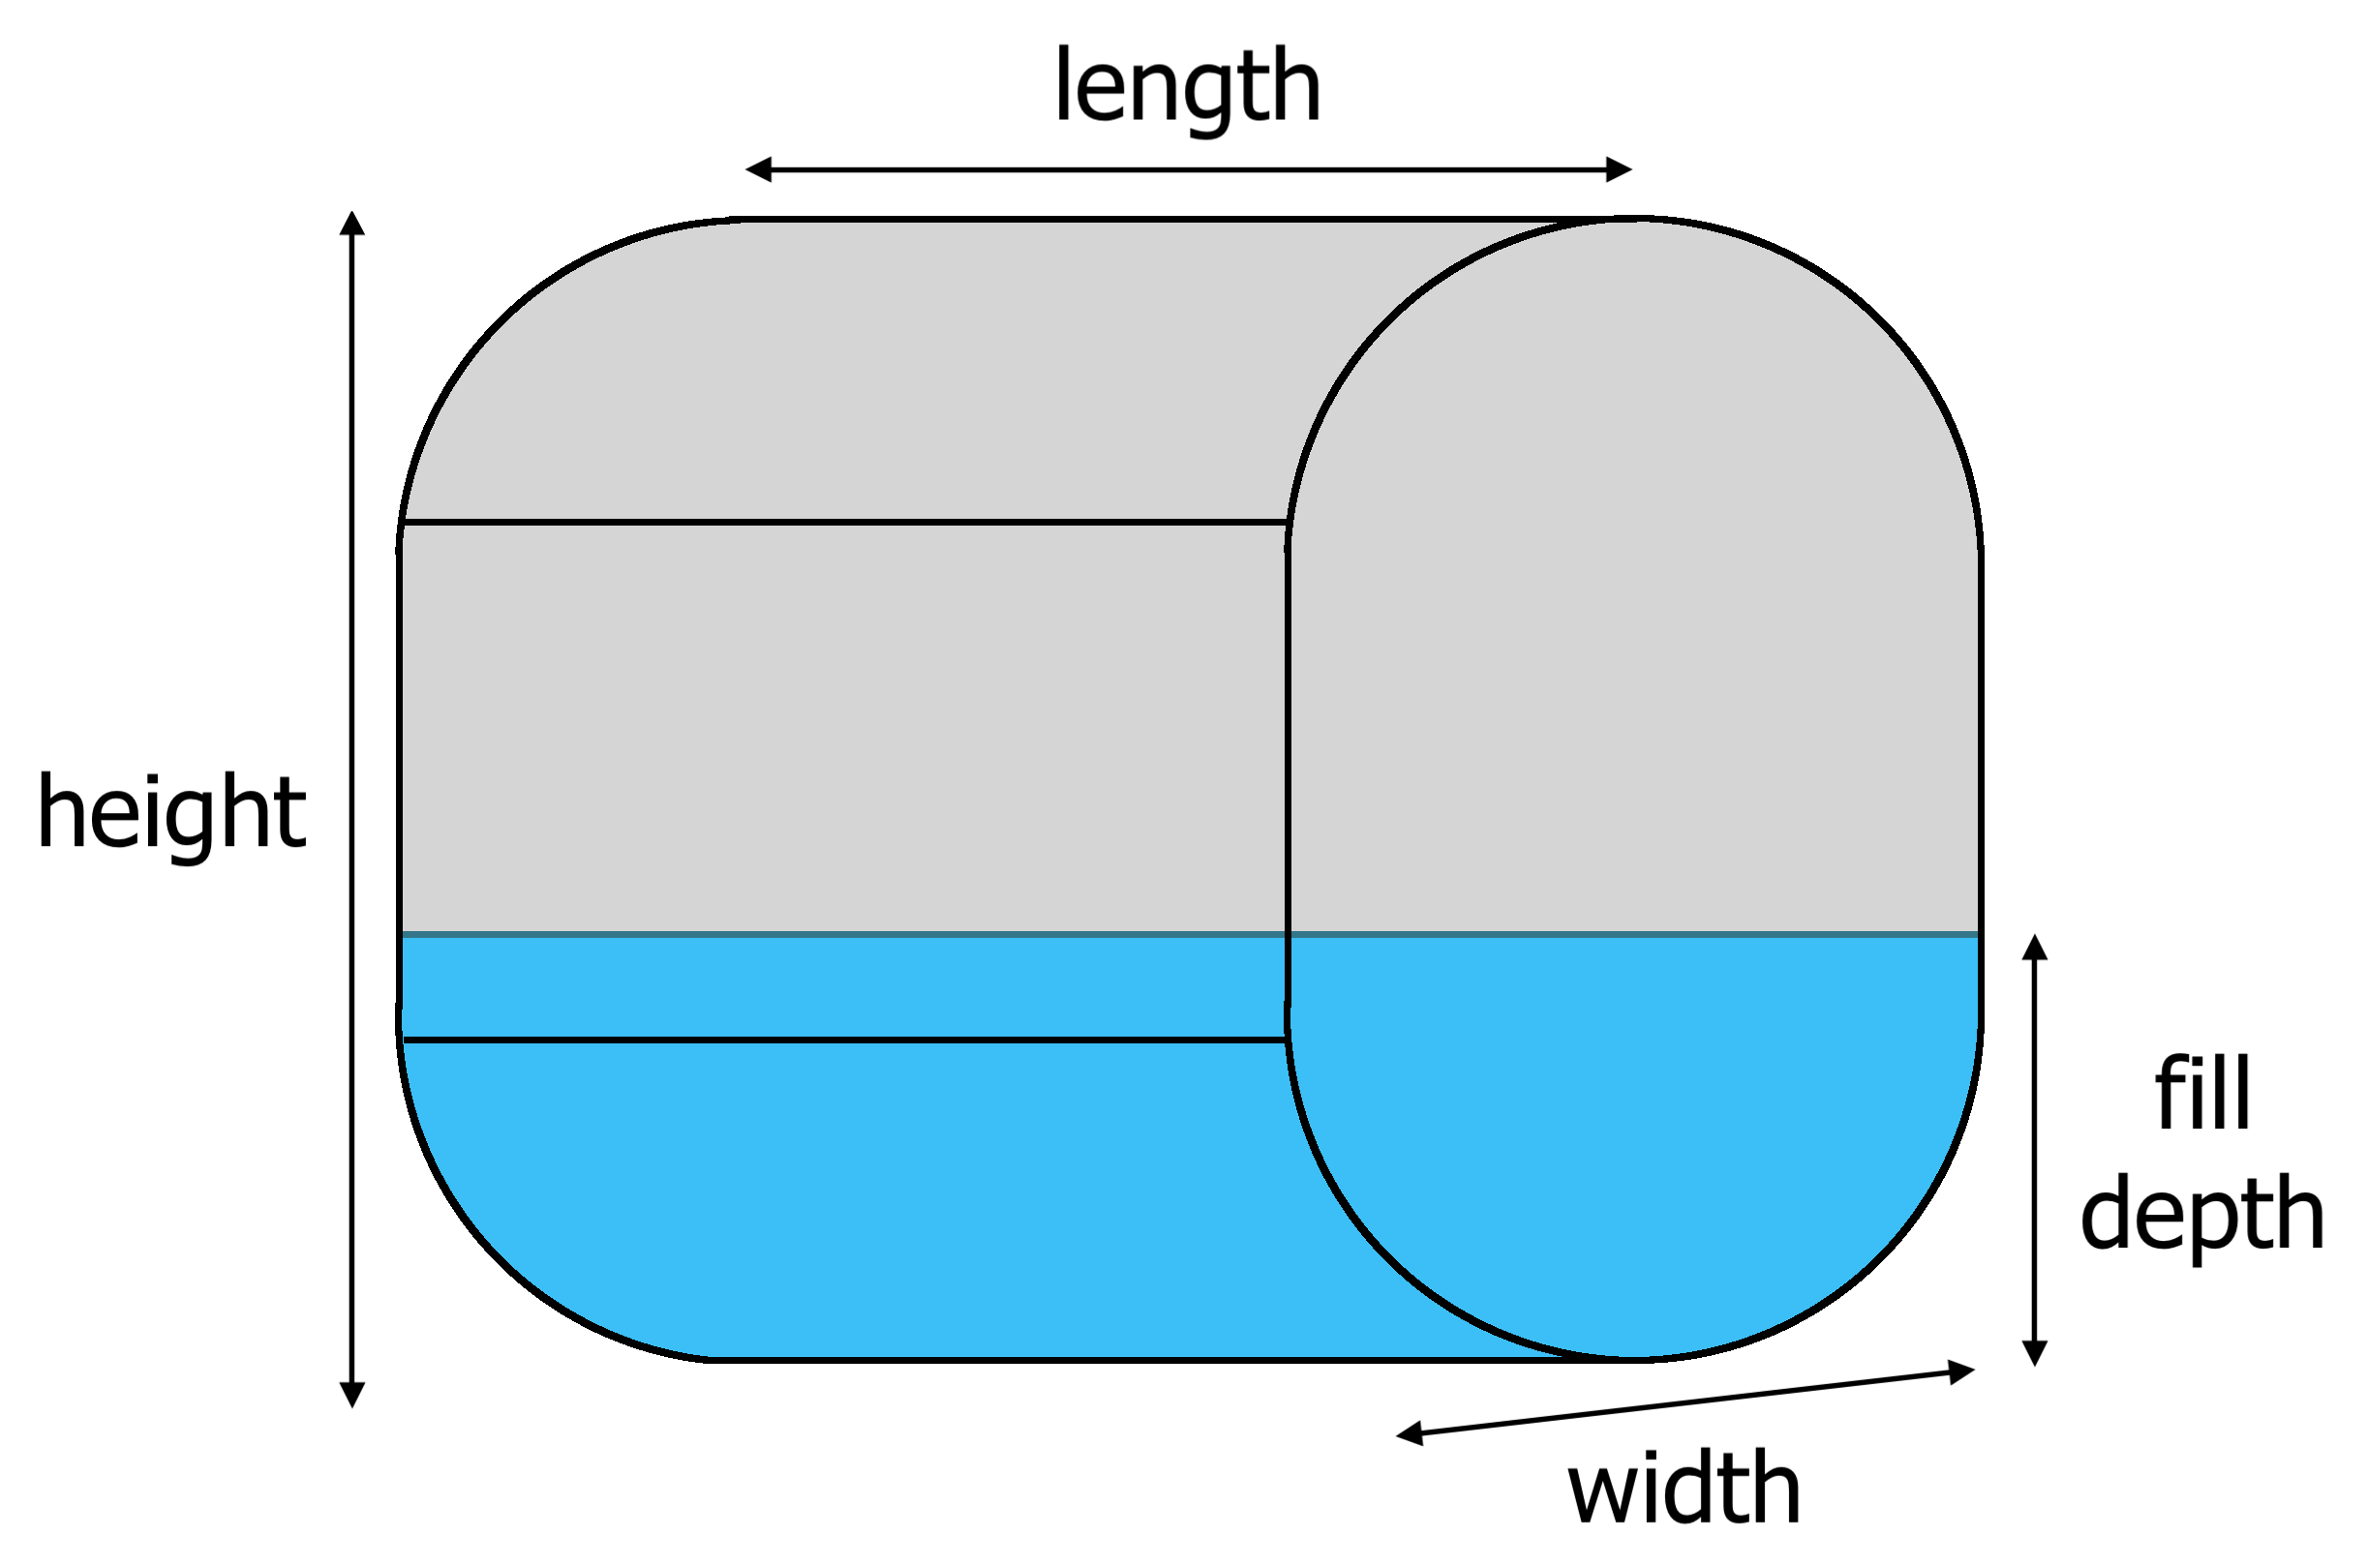 vertical oval tank diagram showing length, width, height, and fill depth dimensions